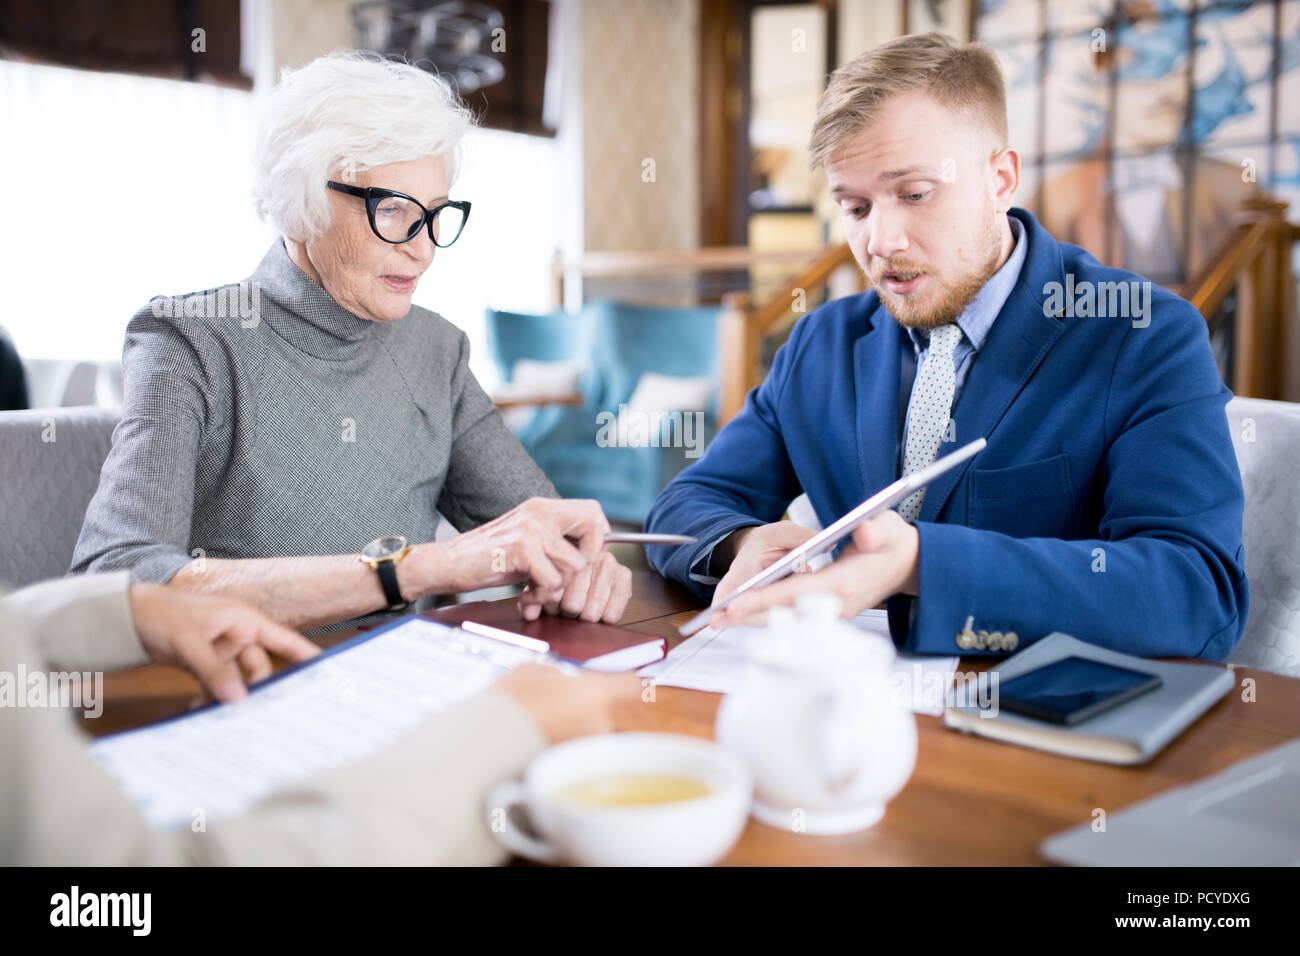 People discussing at a meeting - Stock Image